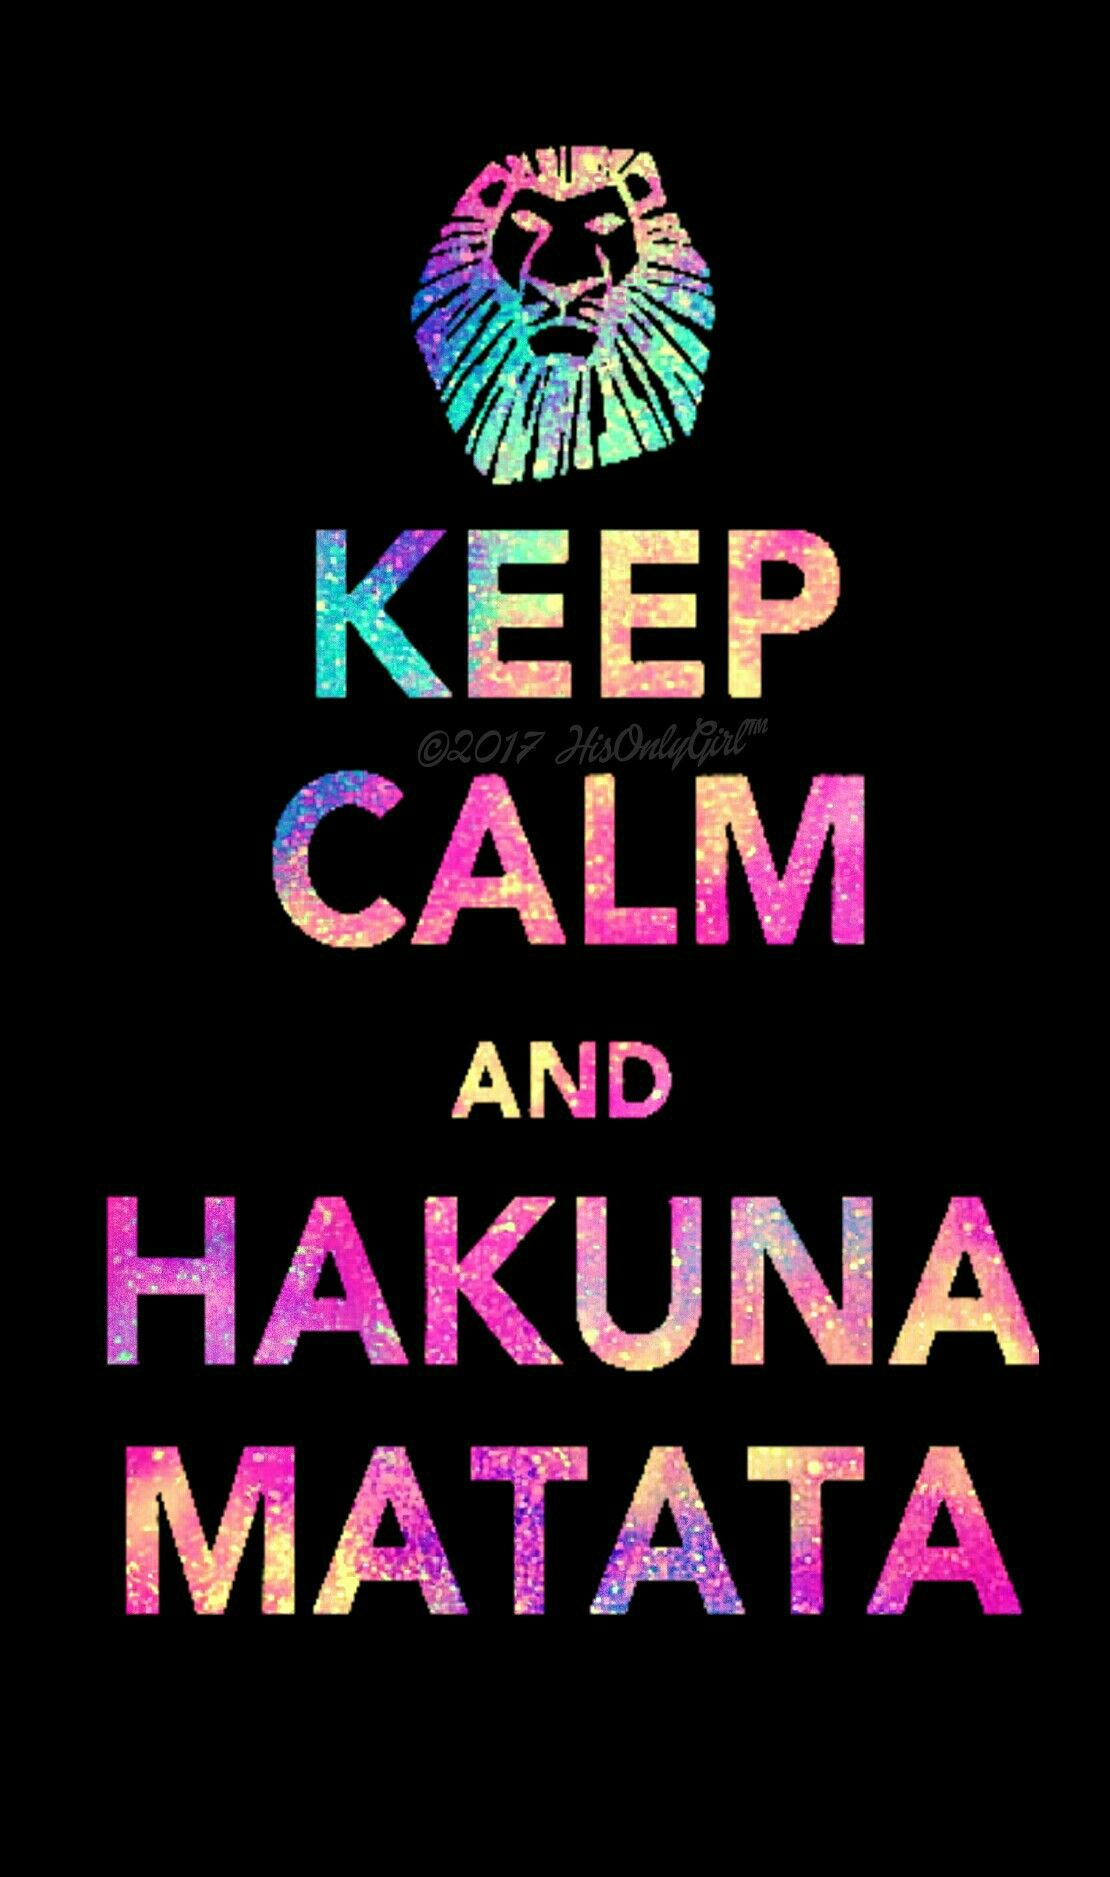 Keep Calm Hakuna Matata Galaxy Wallpaper I Created For The App CocoPPa